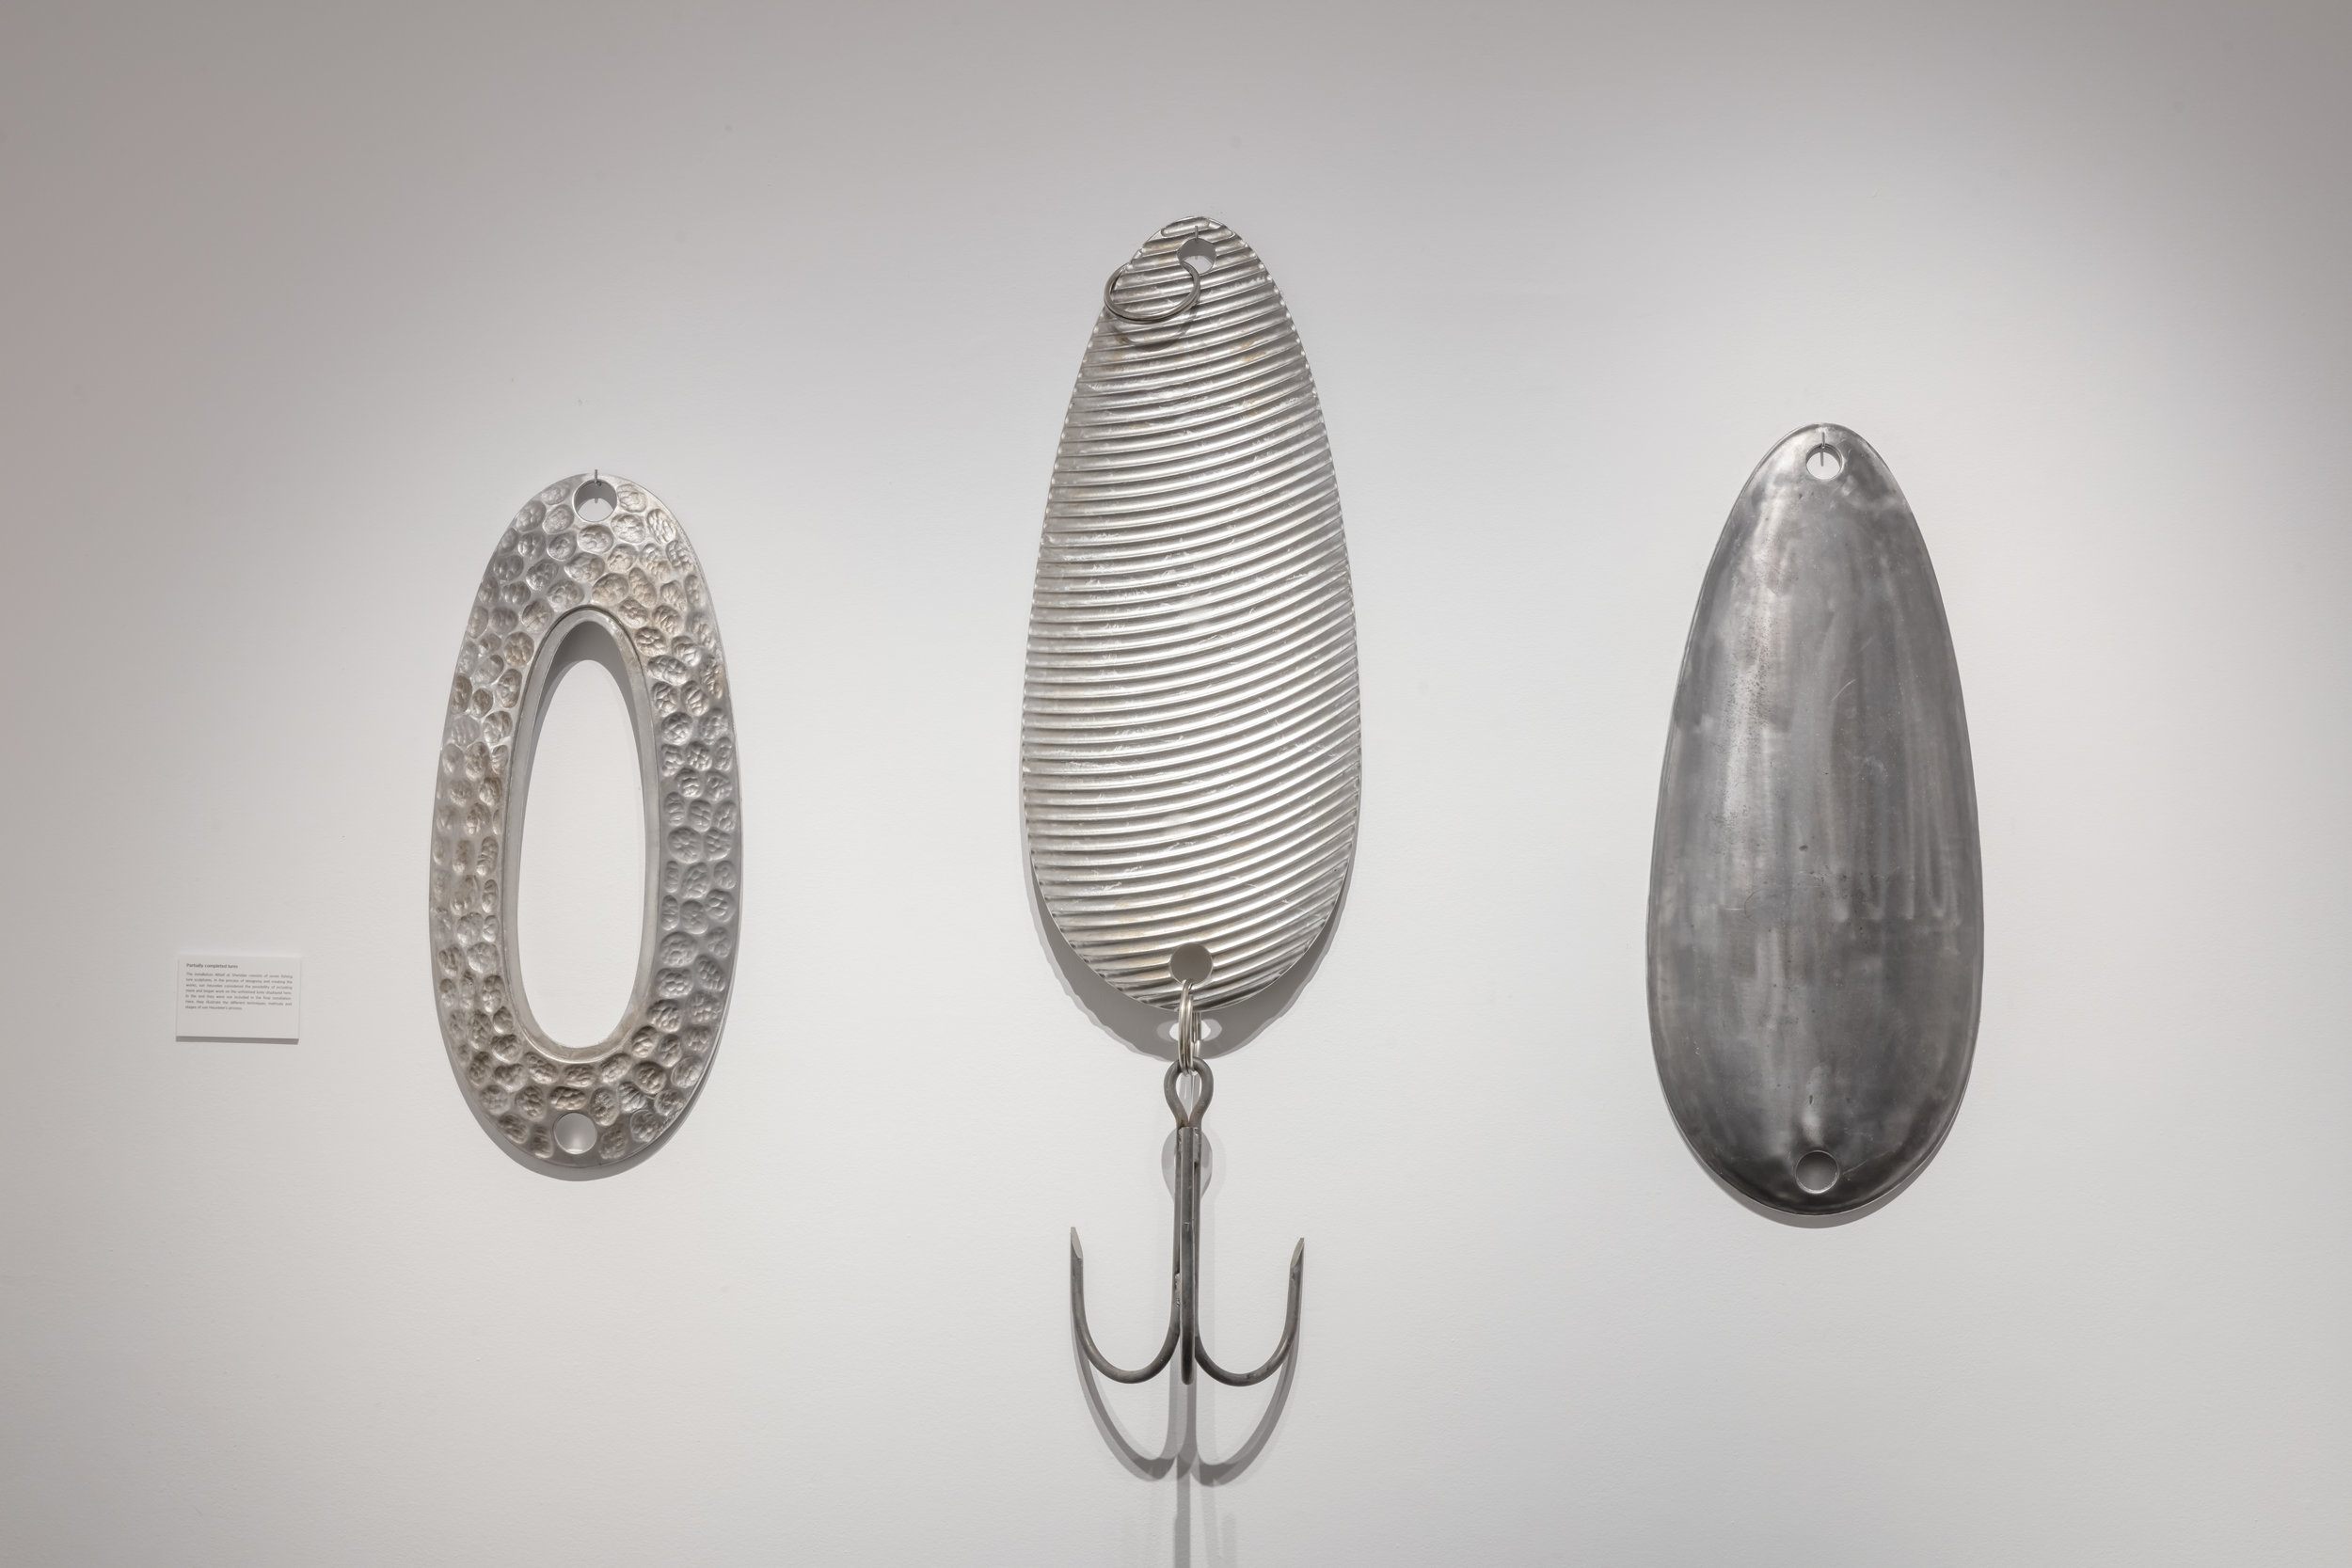 Couzyn van Heuvelen,  Casting Hooks , XIT-RM, Art Gallery of Mississauga. Photo by Toni Hafkenscheid.